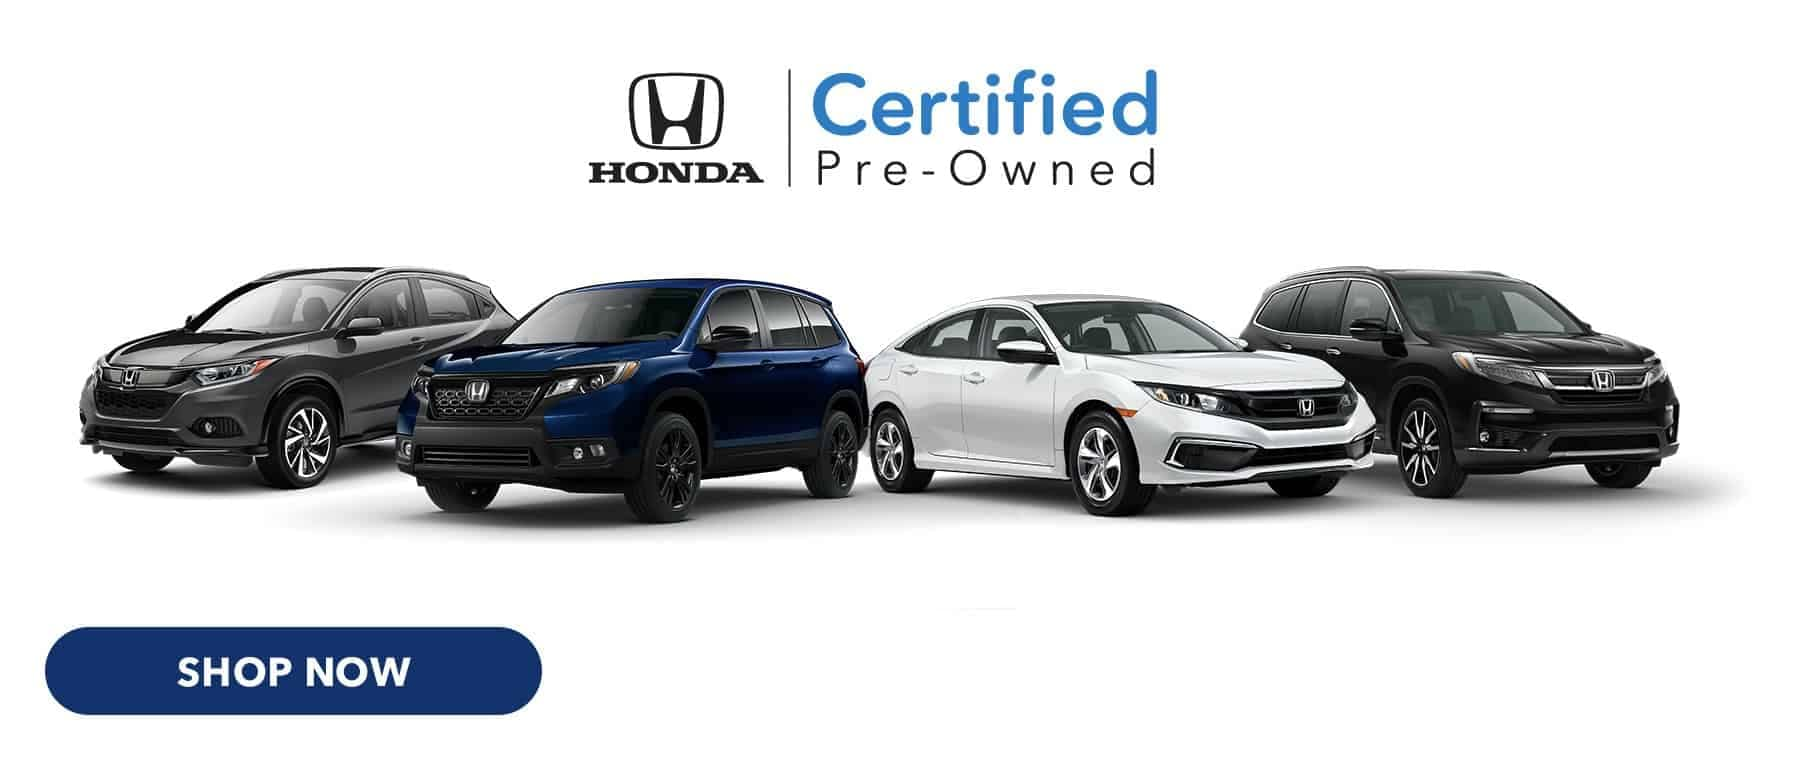 Shop Certified Pre-Owned inventory